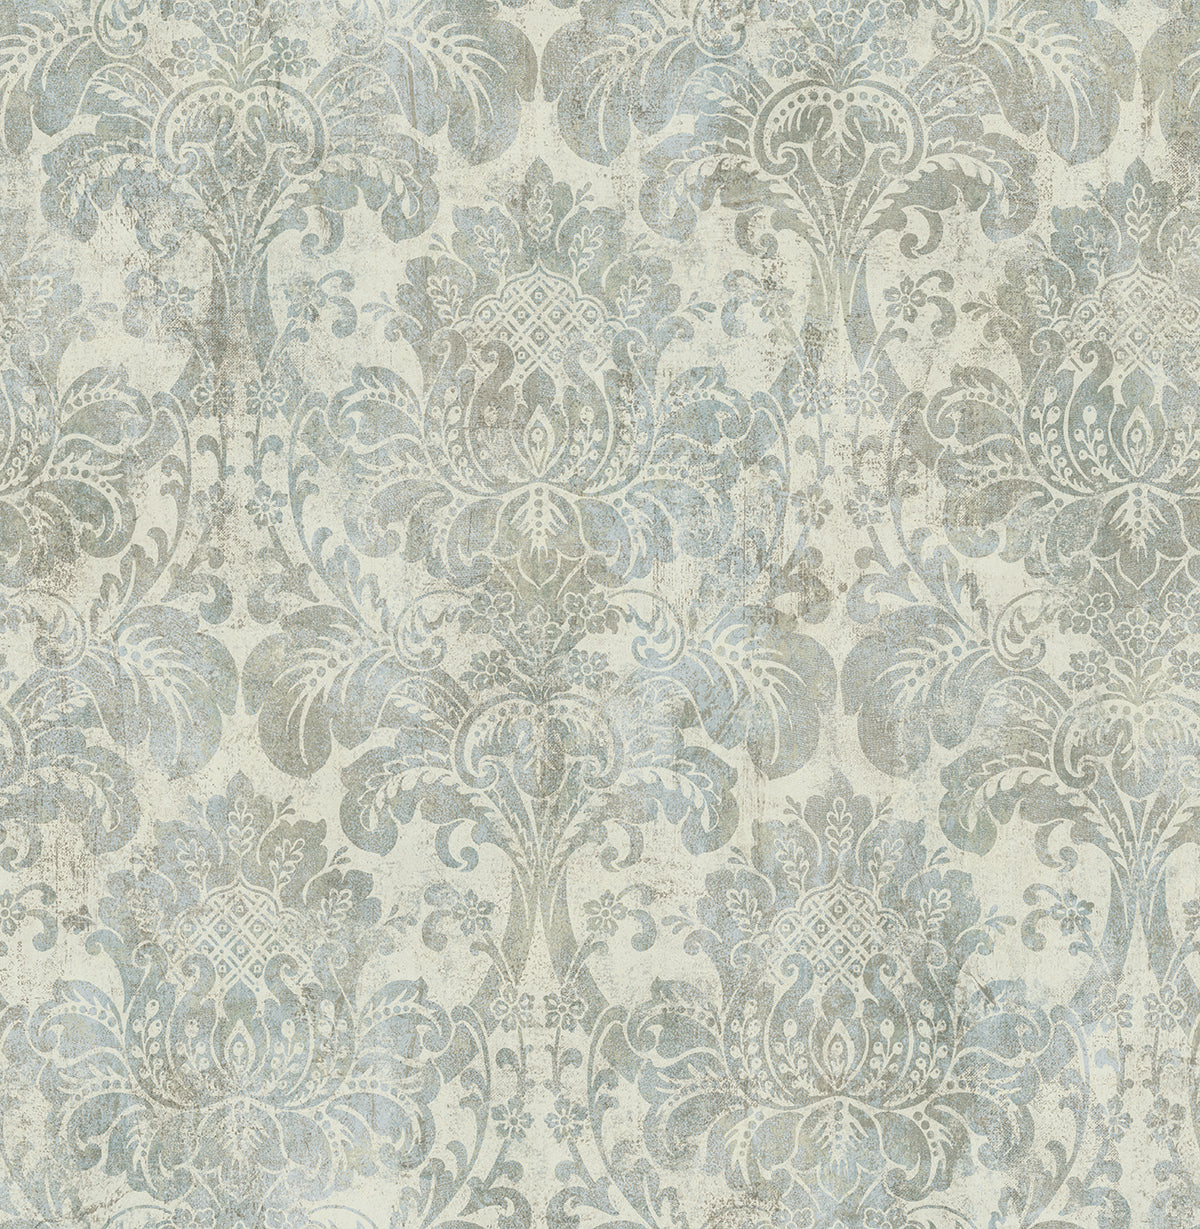 Distressed Damask Wallpaper In Plated From The Vintage Home 2 Collecti Burke Decor